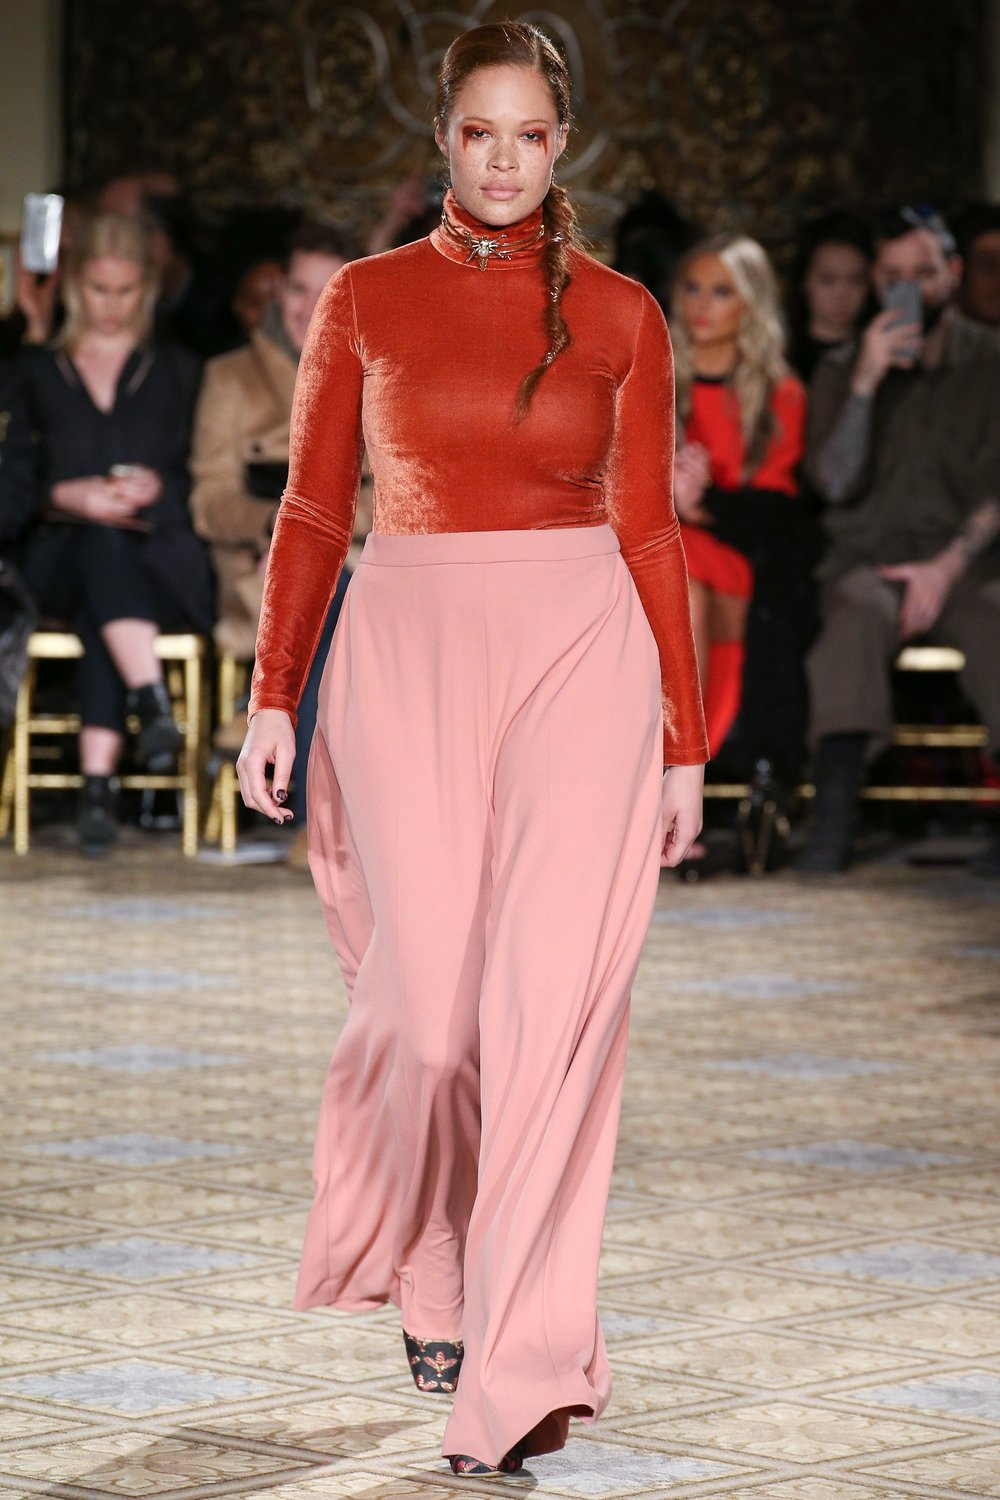 Christian Siriano - Vogue.com: Edward James / indigital.tv